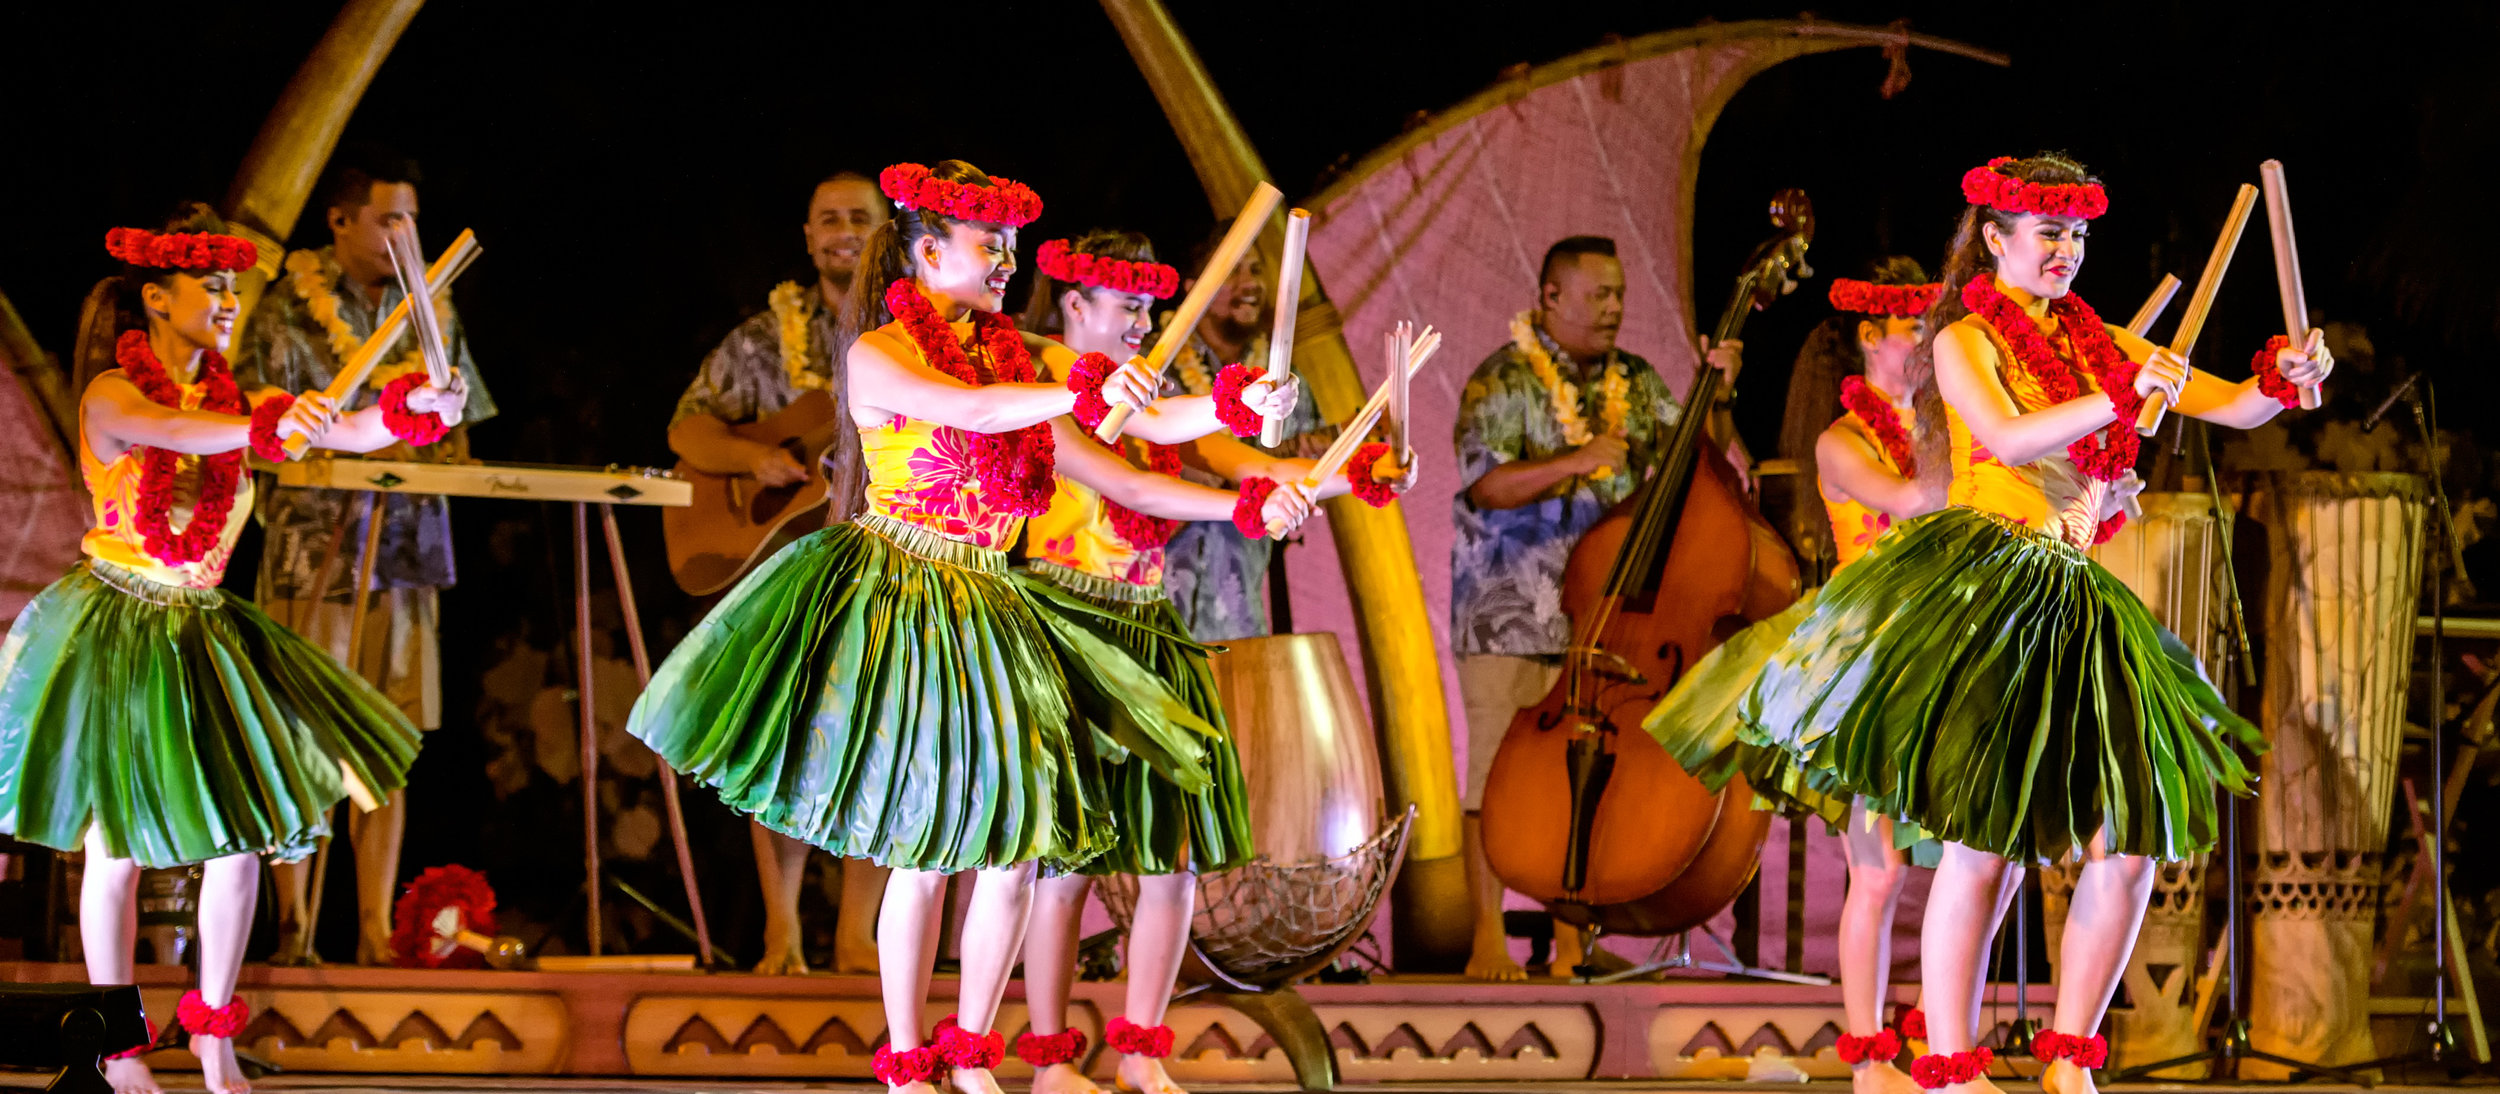 aulani-activities-ka-waa-luau-group-dancers-in-red.jpg